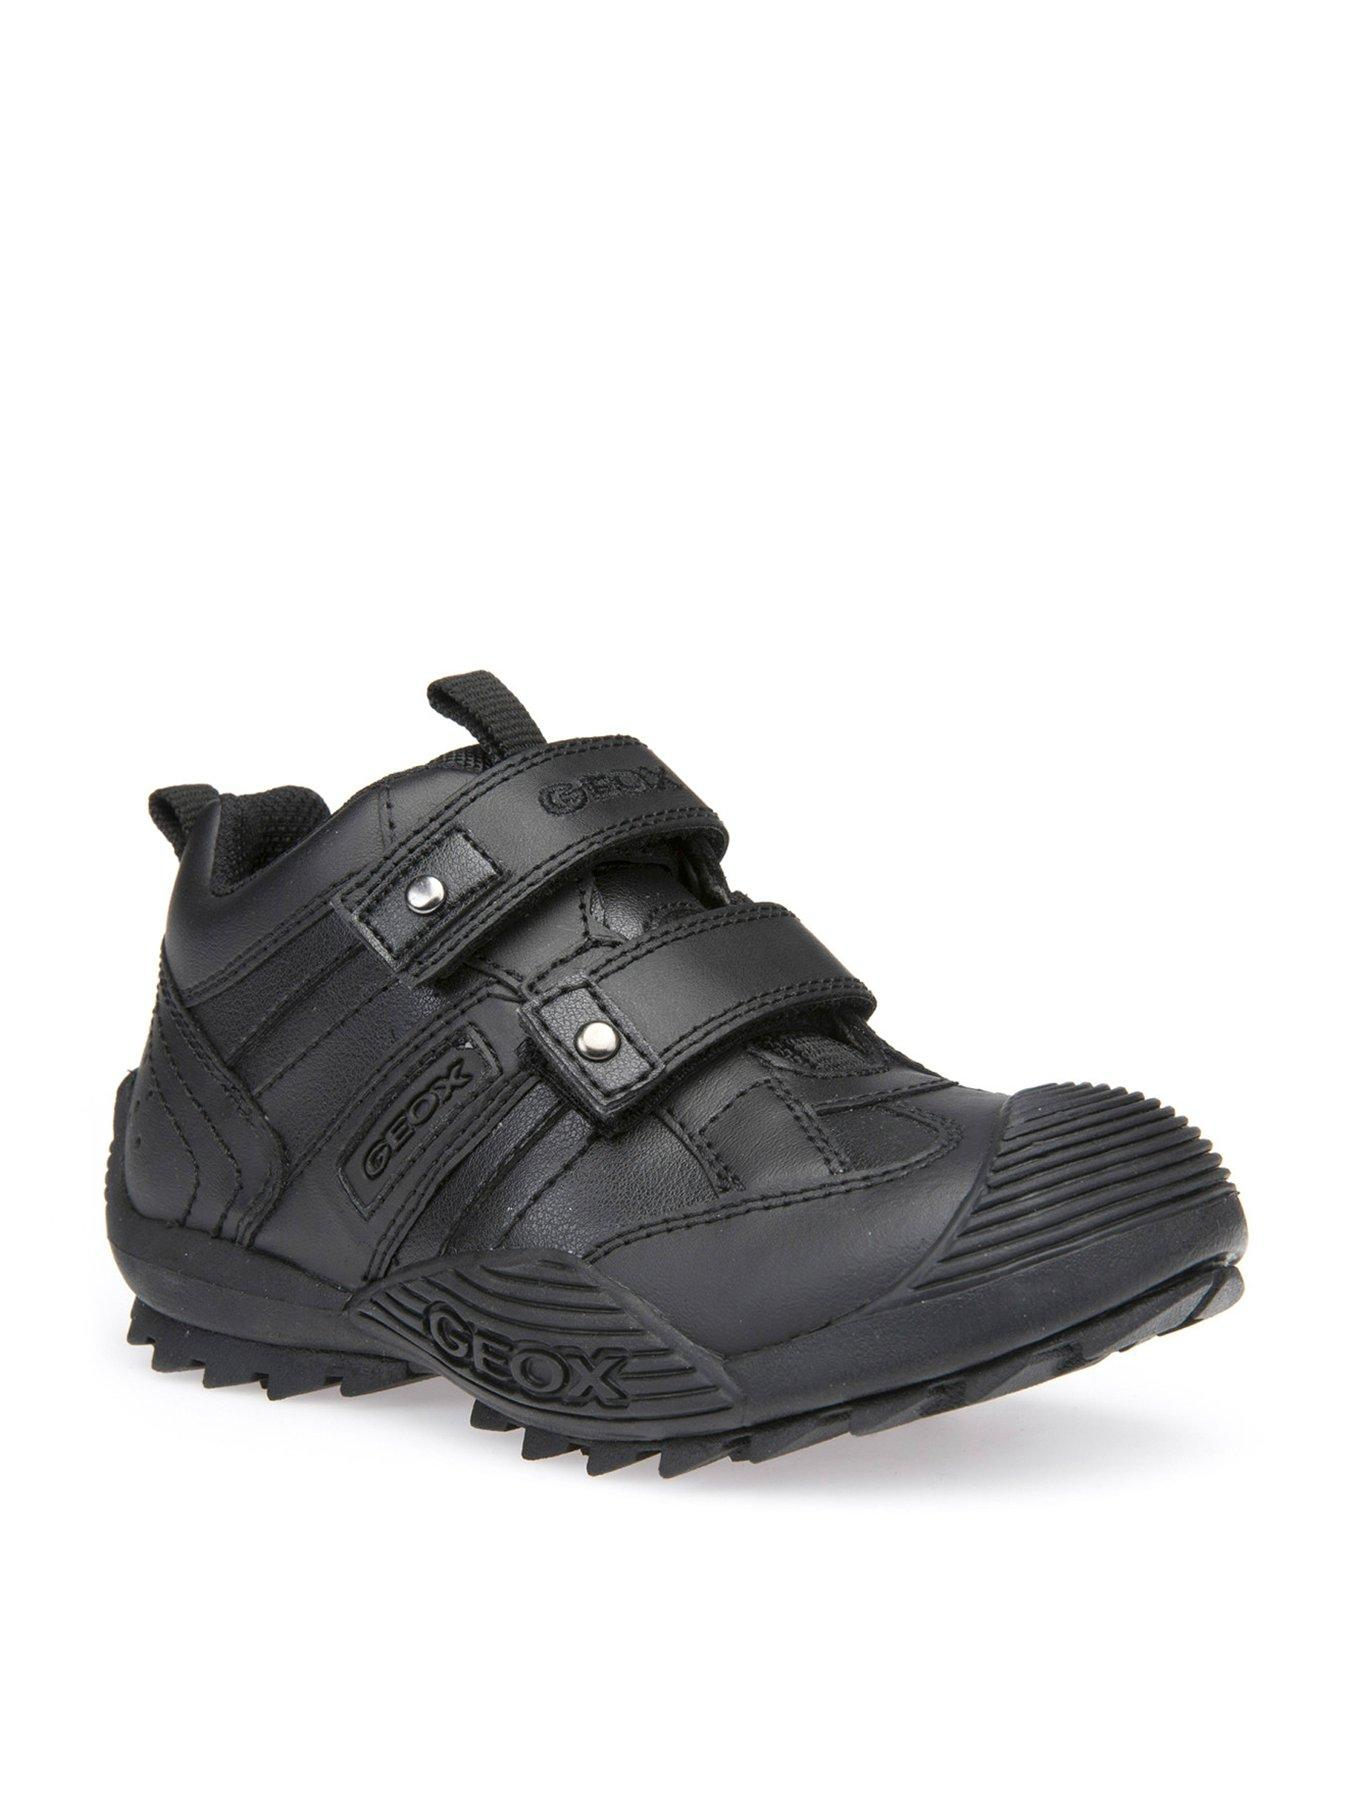 Boys Velcro School Shoes Boys Velcro School Trainers Easy Touch Fastening Size